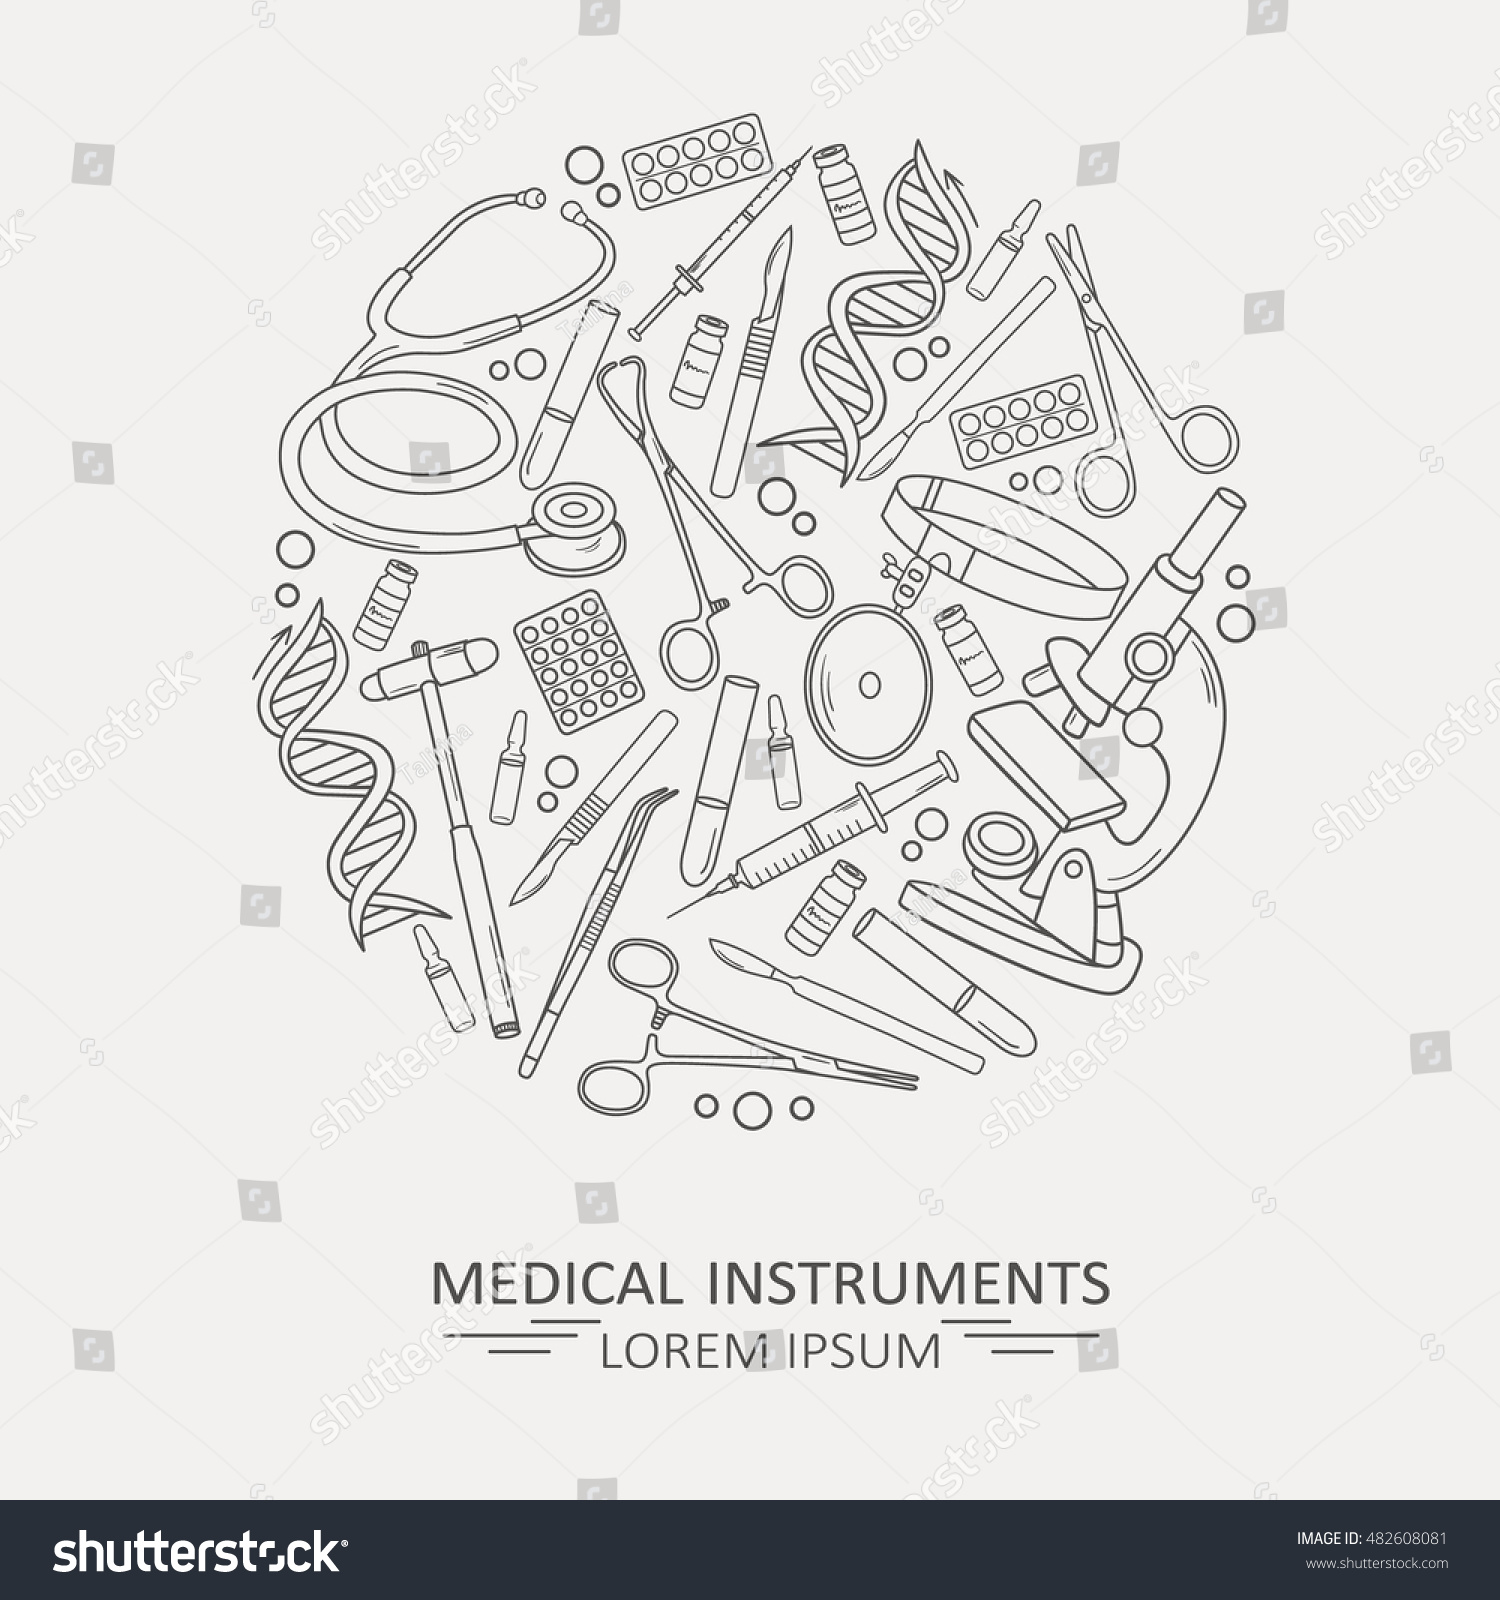 Poster design tools - Medical Illustration With Medical Instruments Poster Design Or Backdrop Set Of Medical Tools